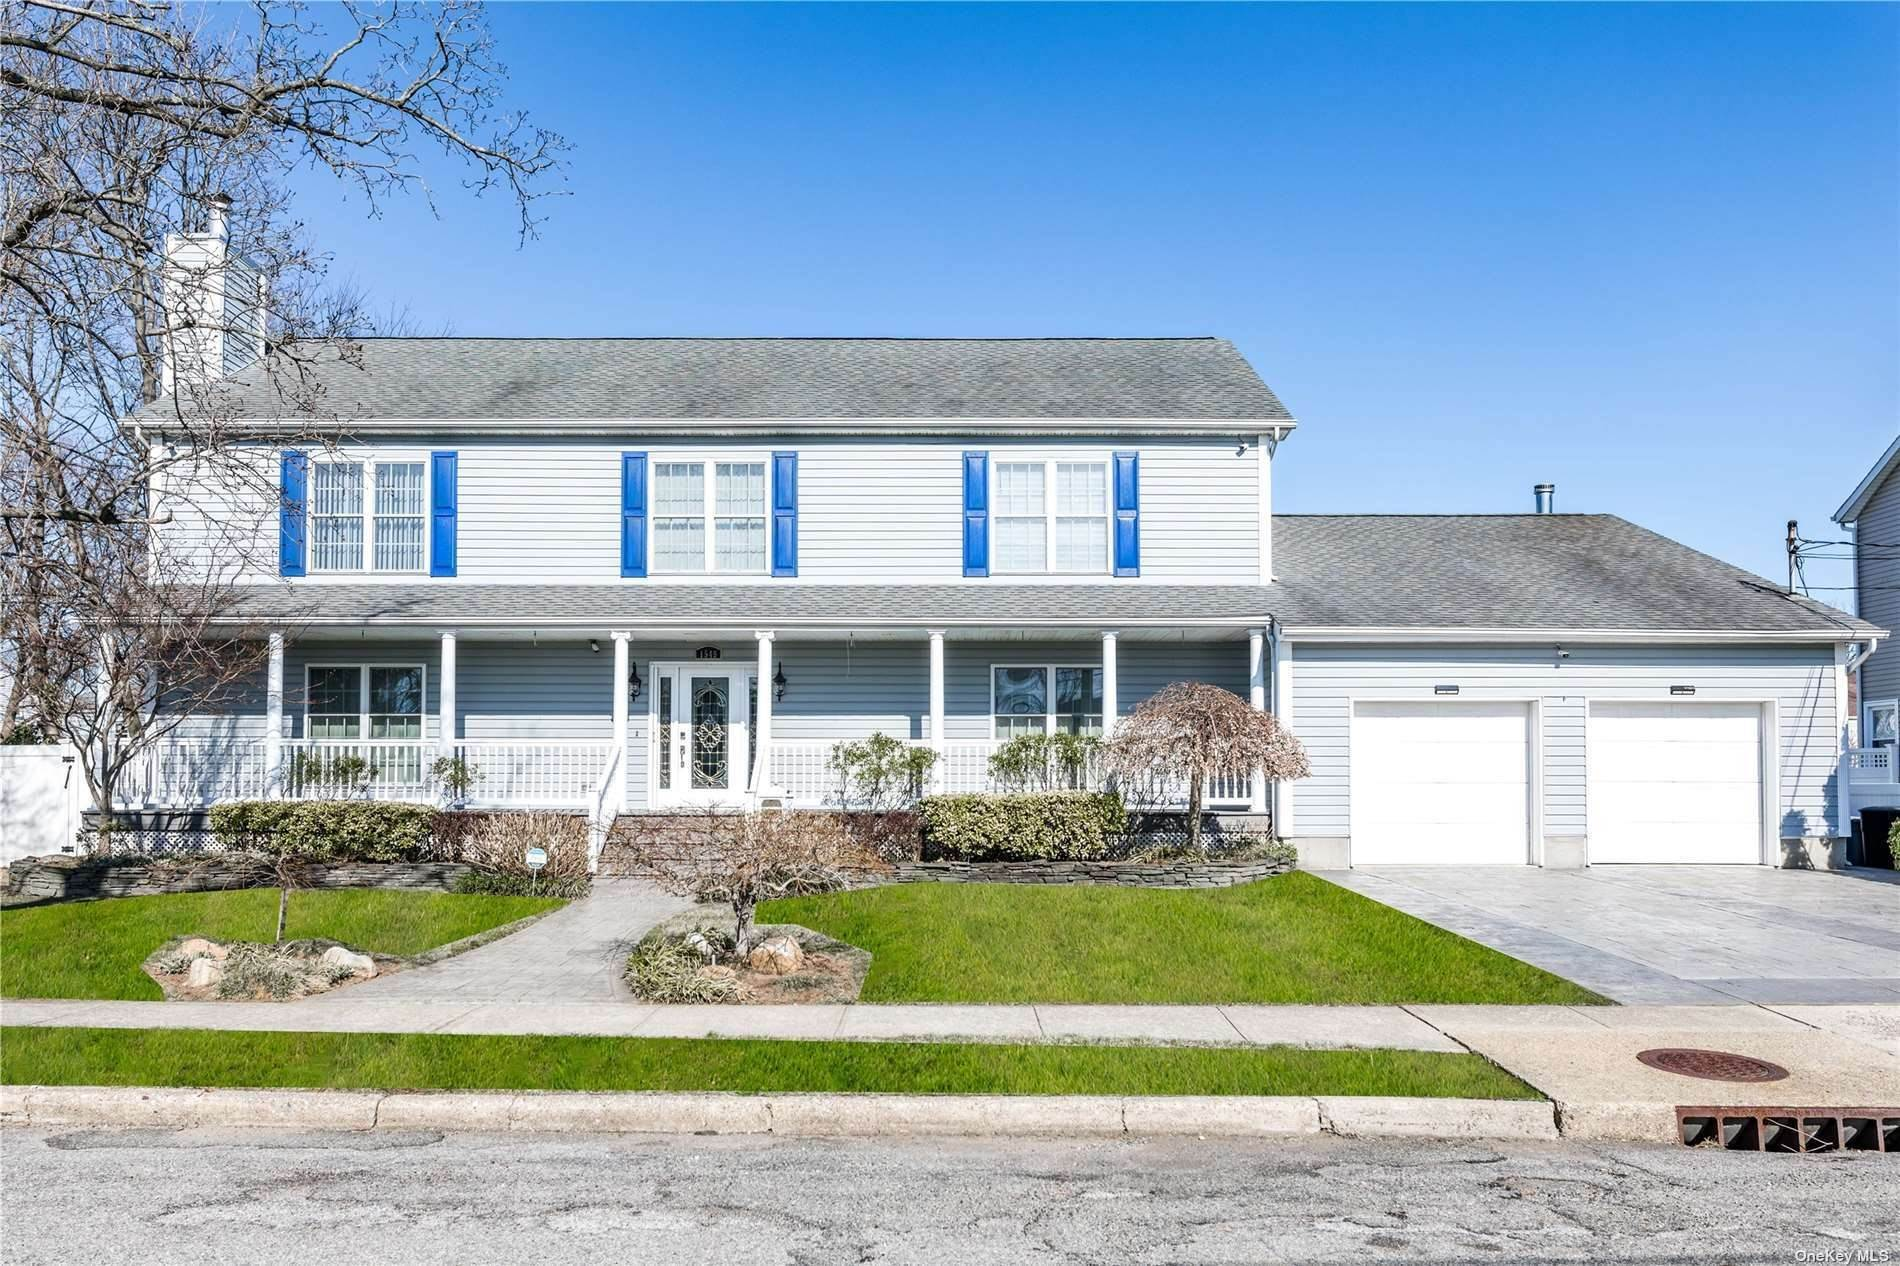 Residential for Sale at 1549 Fenimore Street North Bellmore, New York 11710 United States